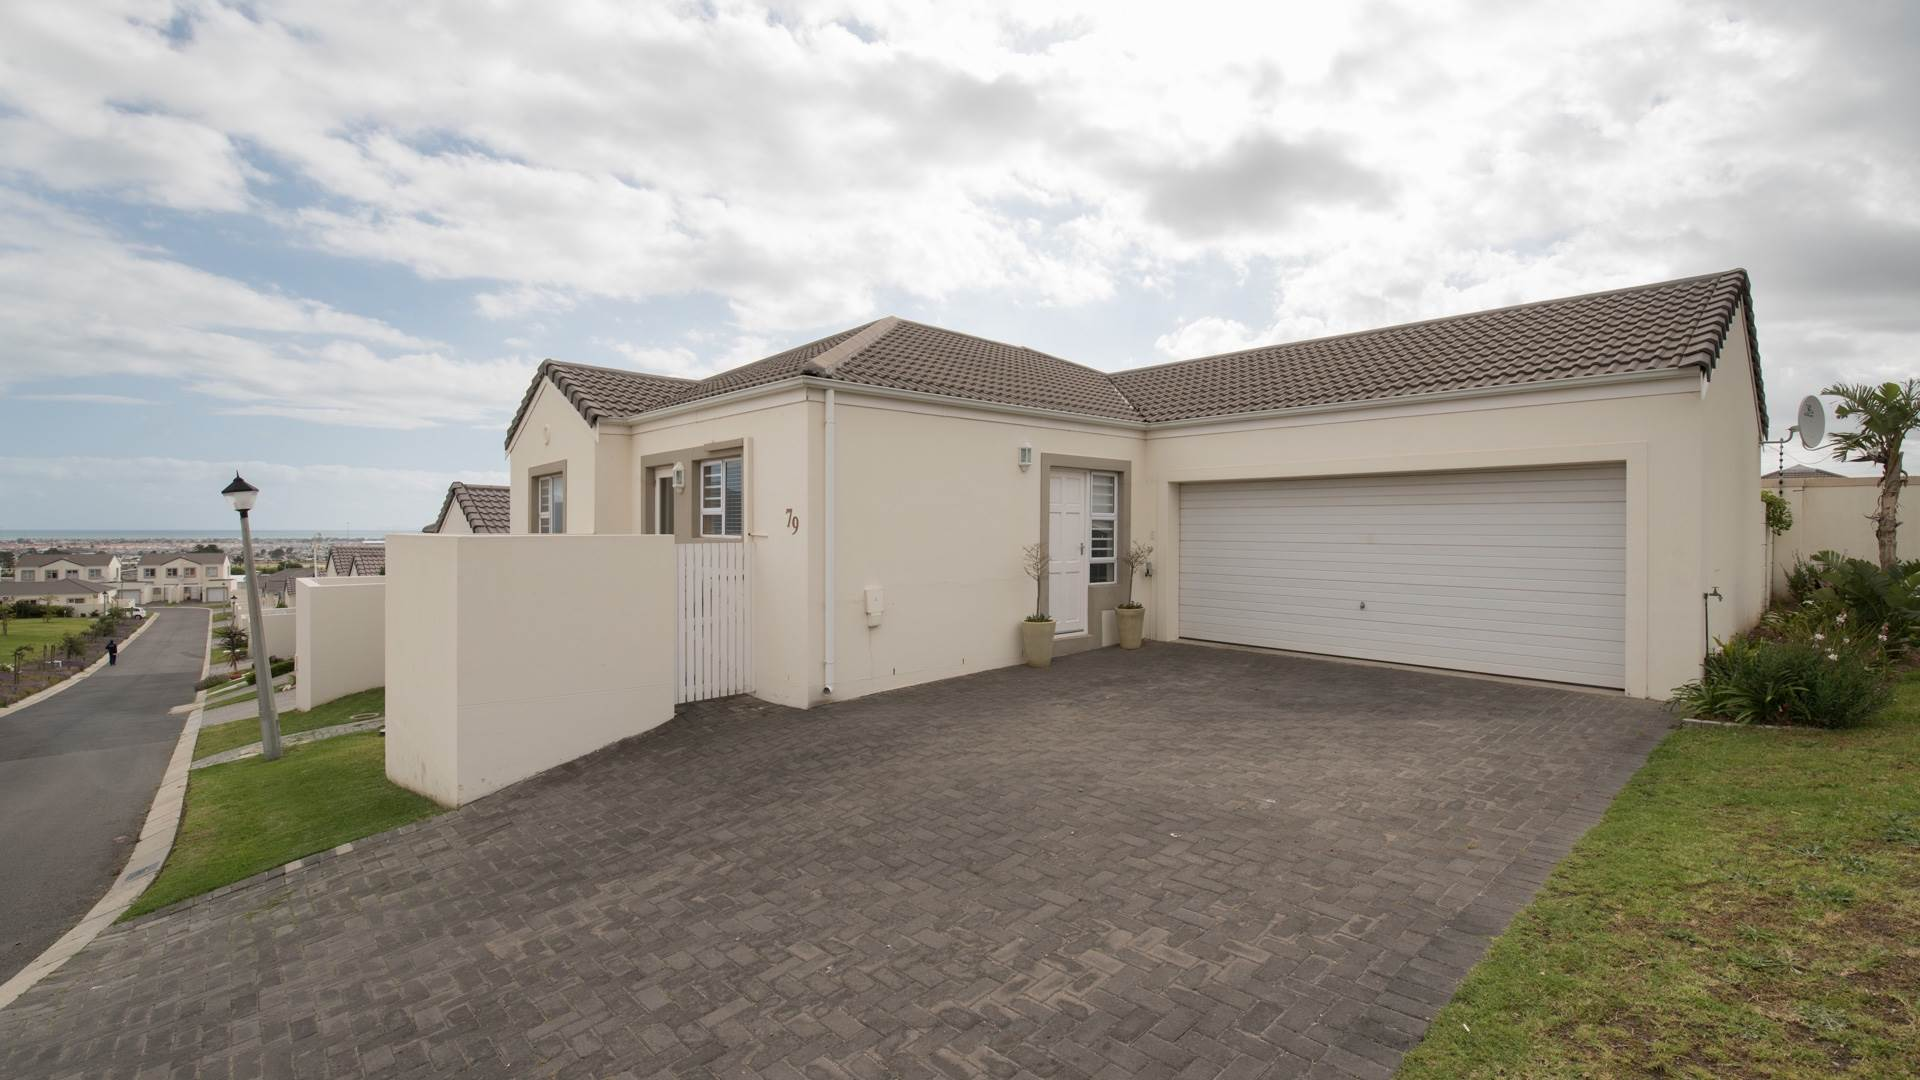 3 BedroomHouse For Sale In Somerset West